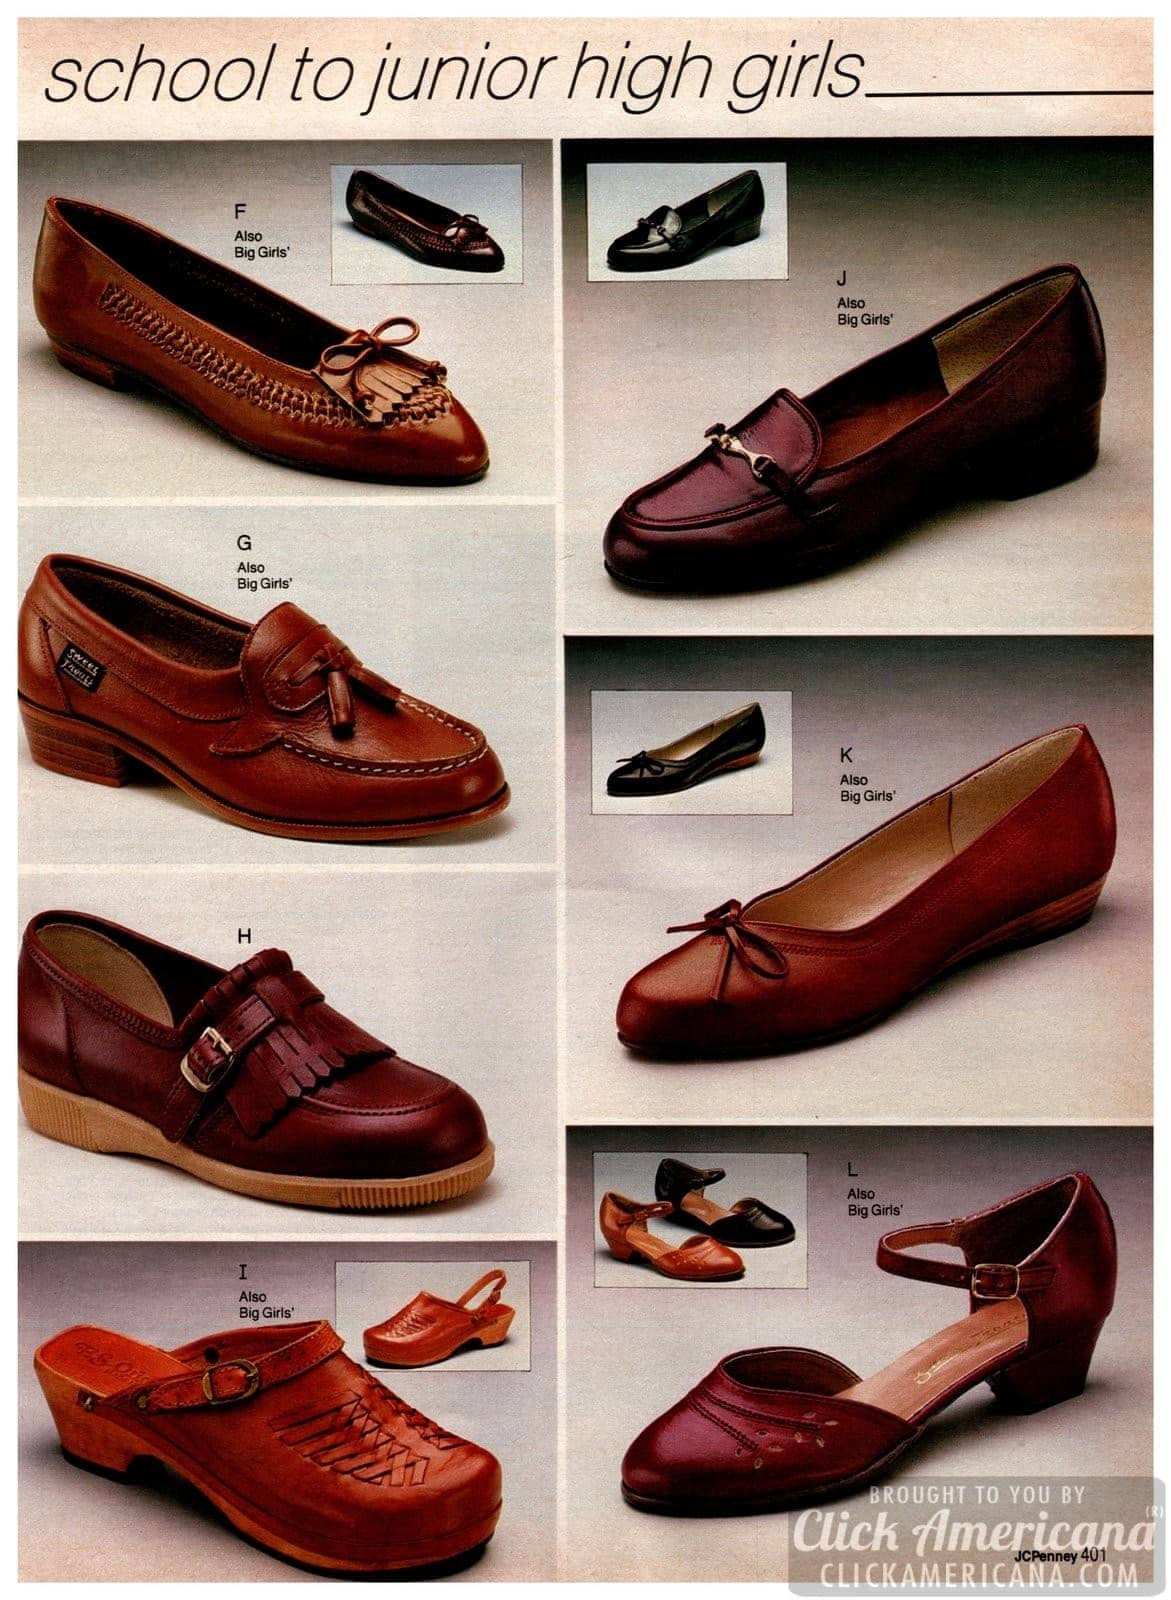 Preppy shoes for junior high girls - brown, tan and beige leather shoes